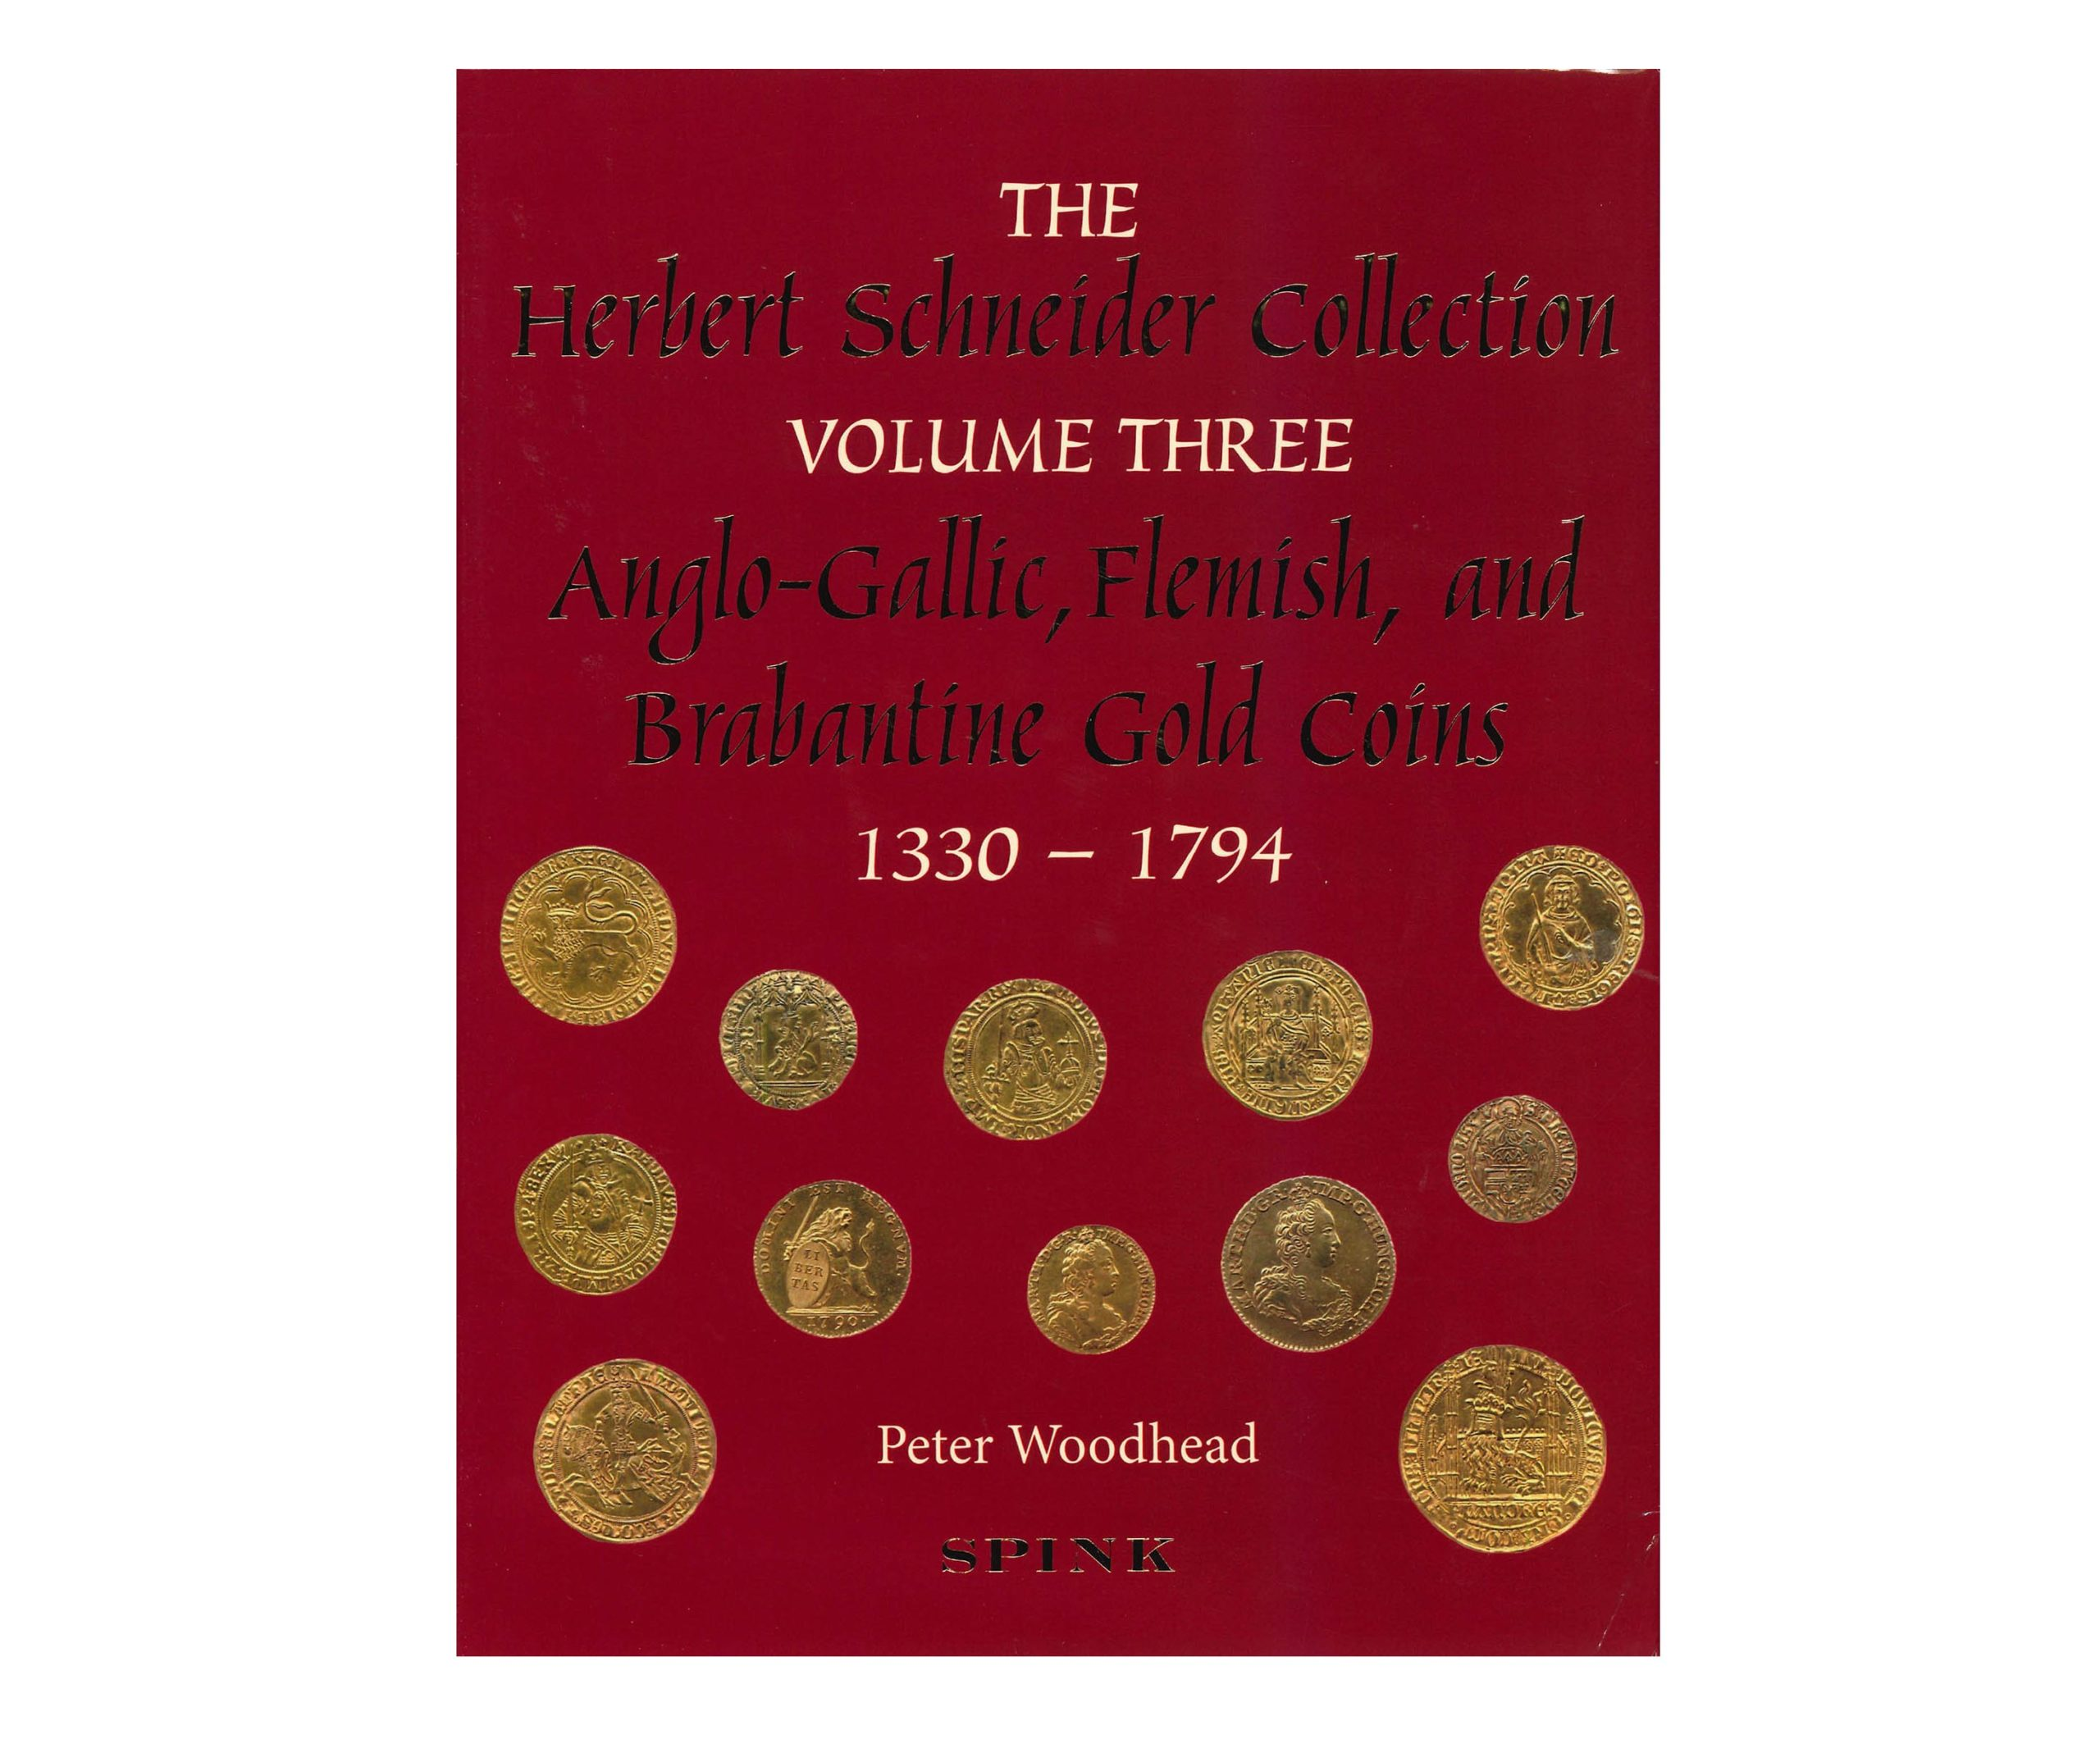 The Herbert Schneider Collection. Volume Three - Anglo-Gallic, Flemish, and Brabantine Gold Coins, 1330-1794